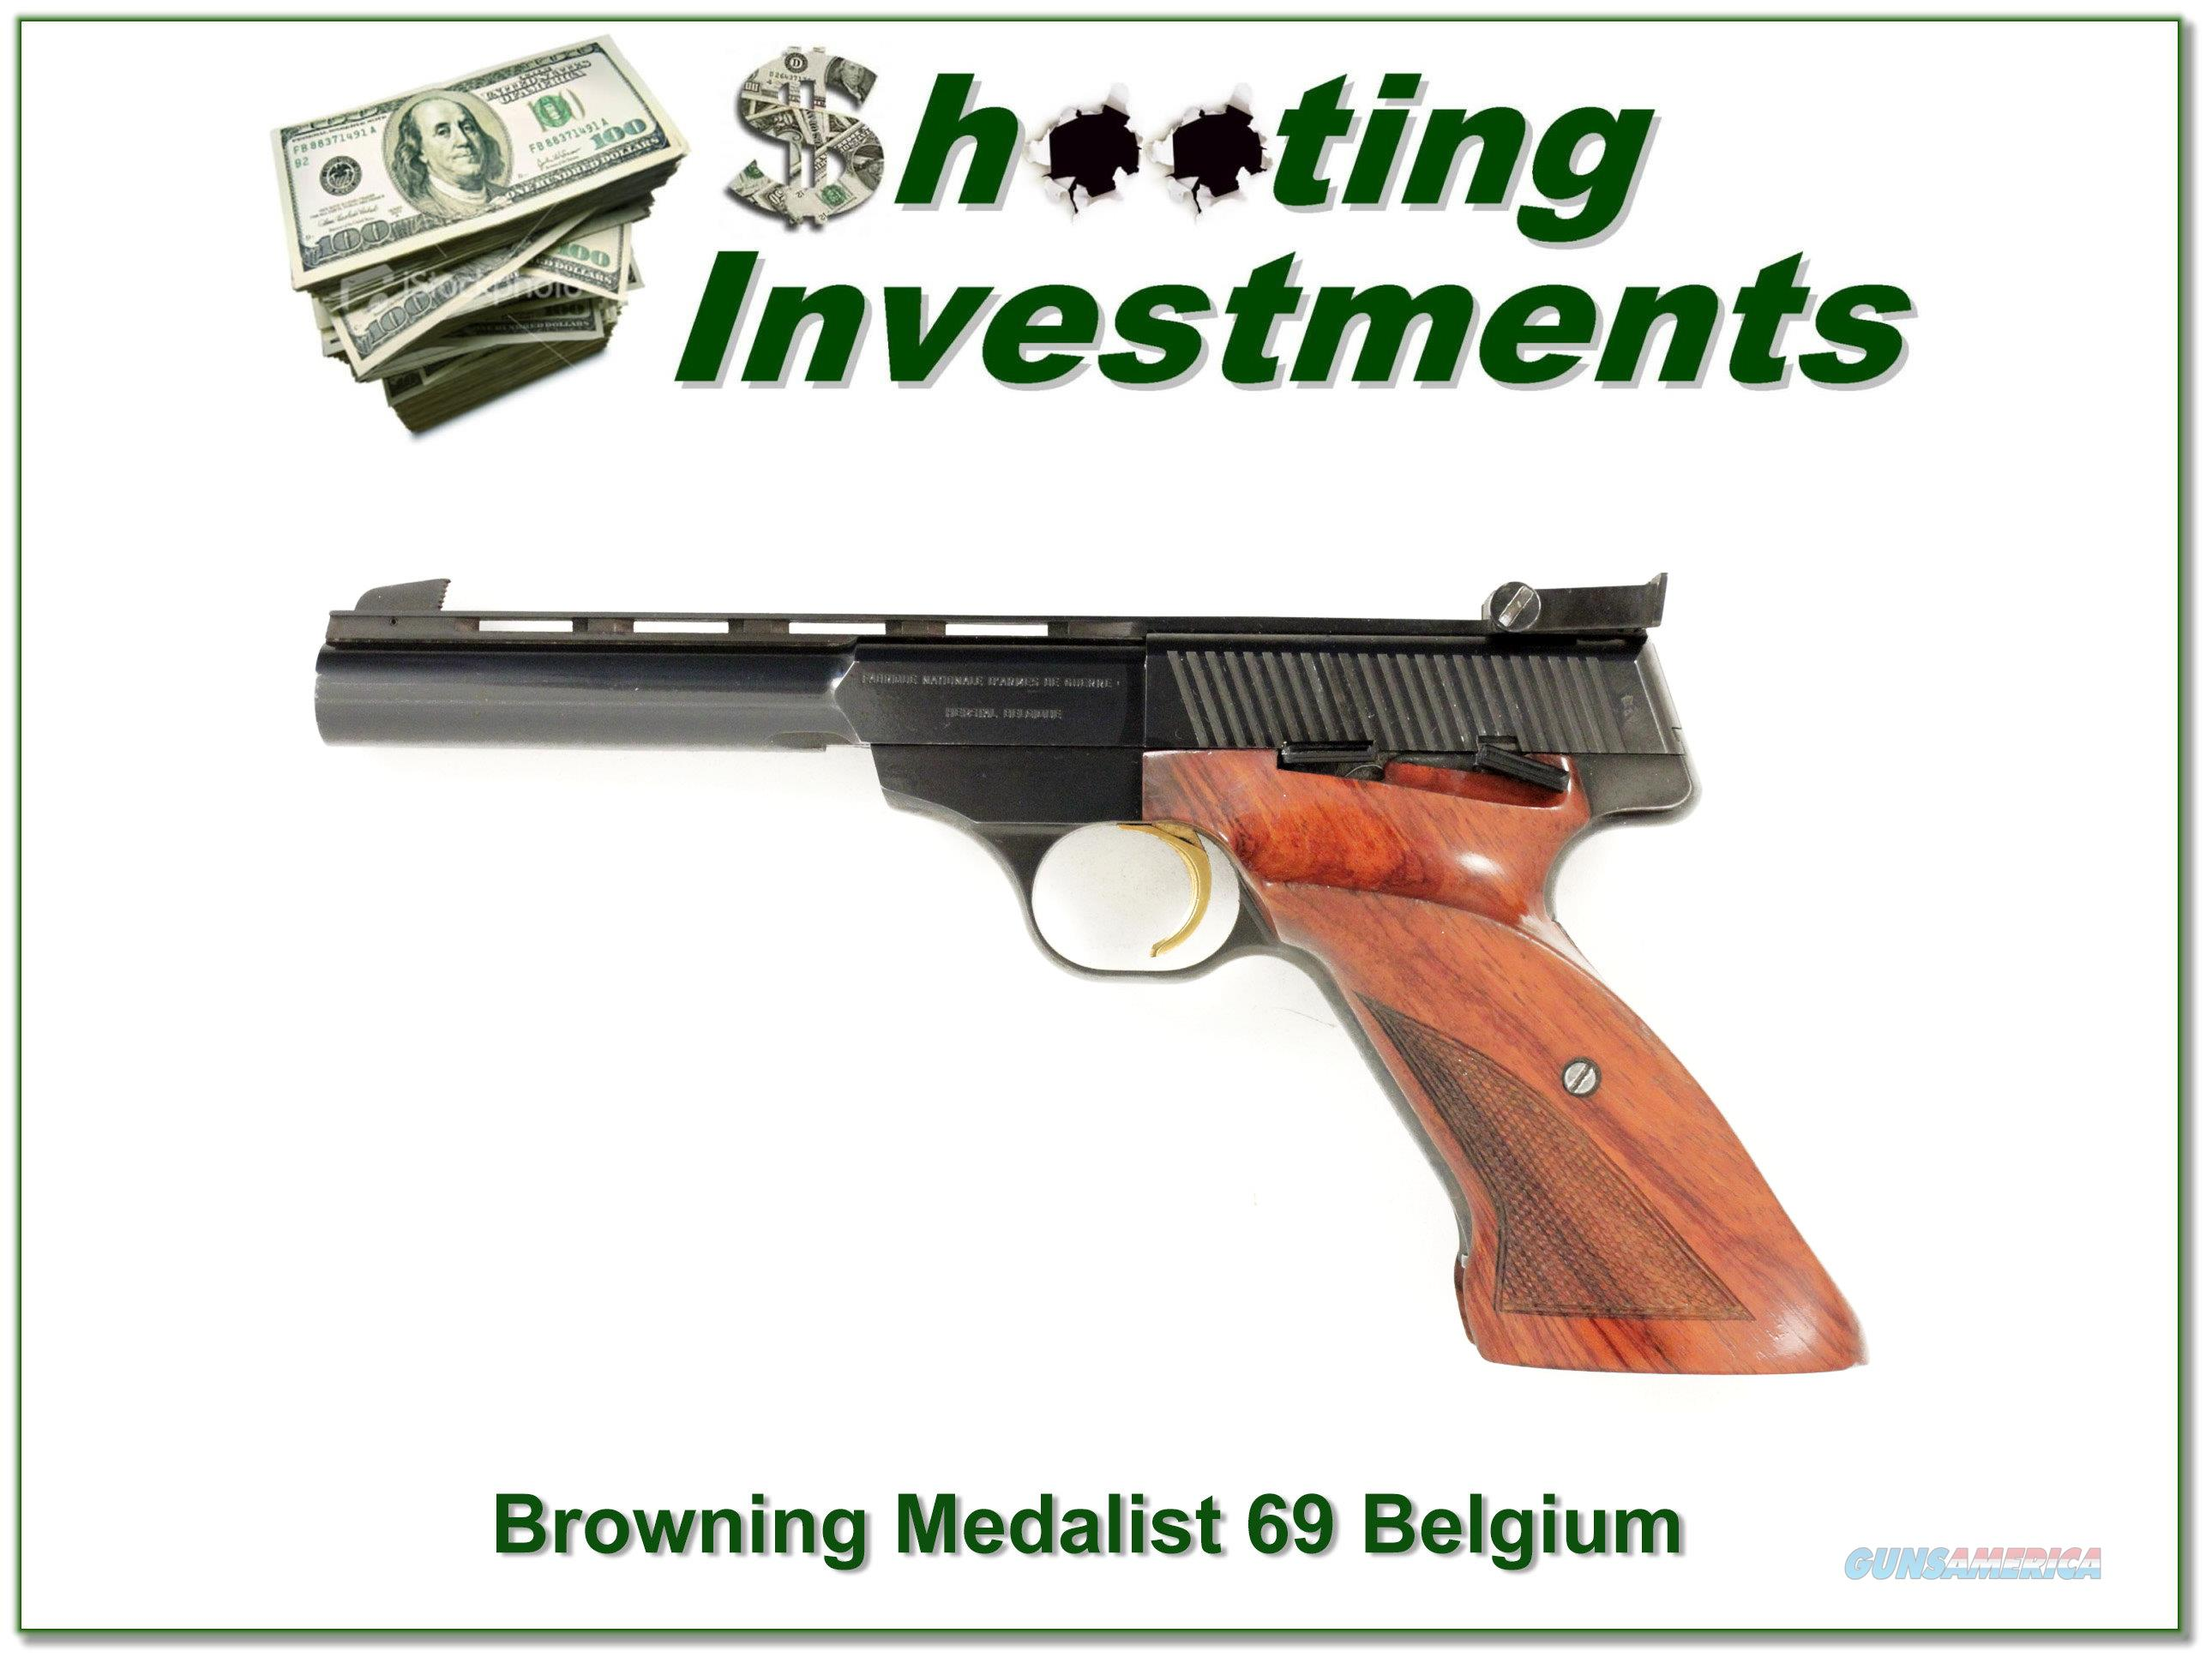 Browning Medalist 22 LR 1969 Belgium  Guns > Pistols > Browning Pistols > Other Autos